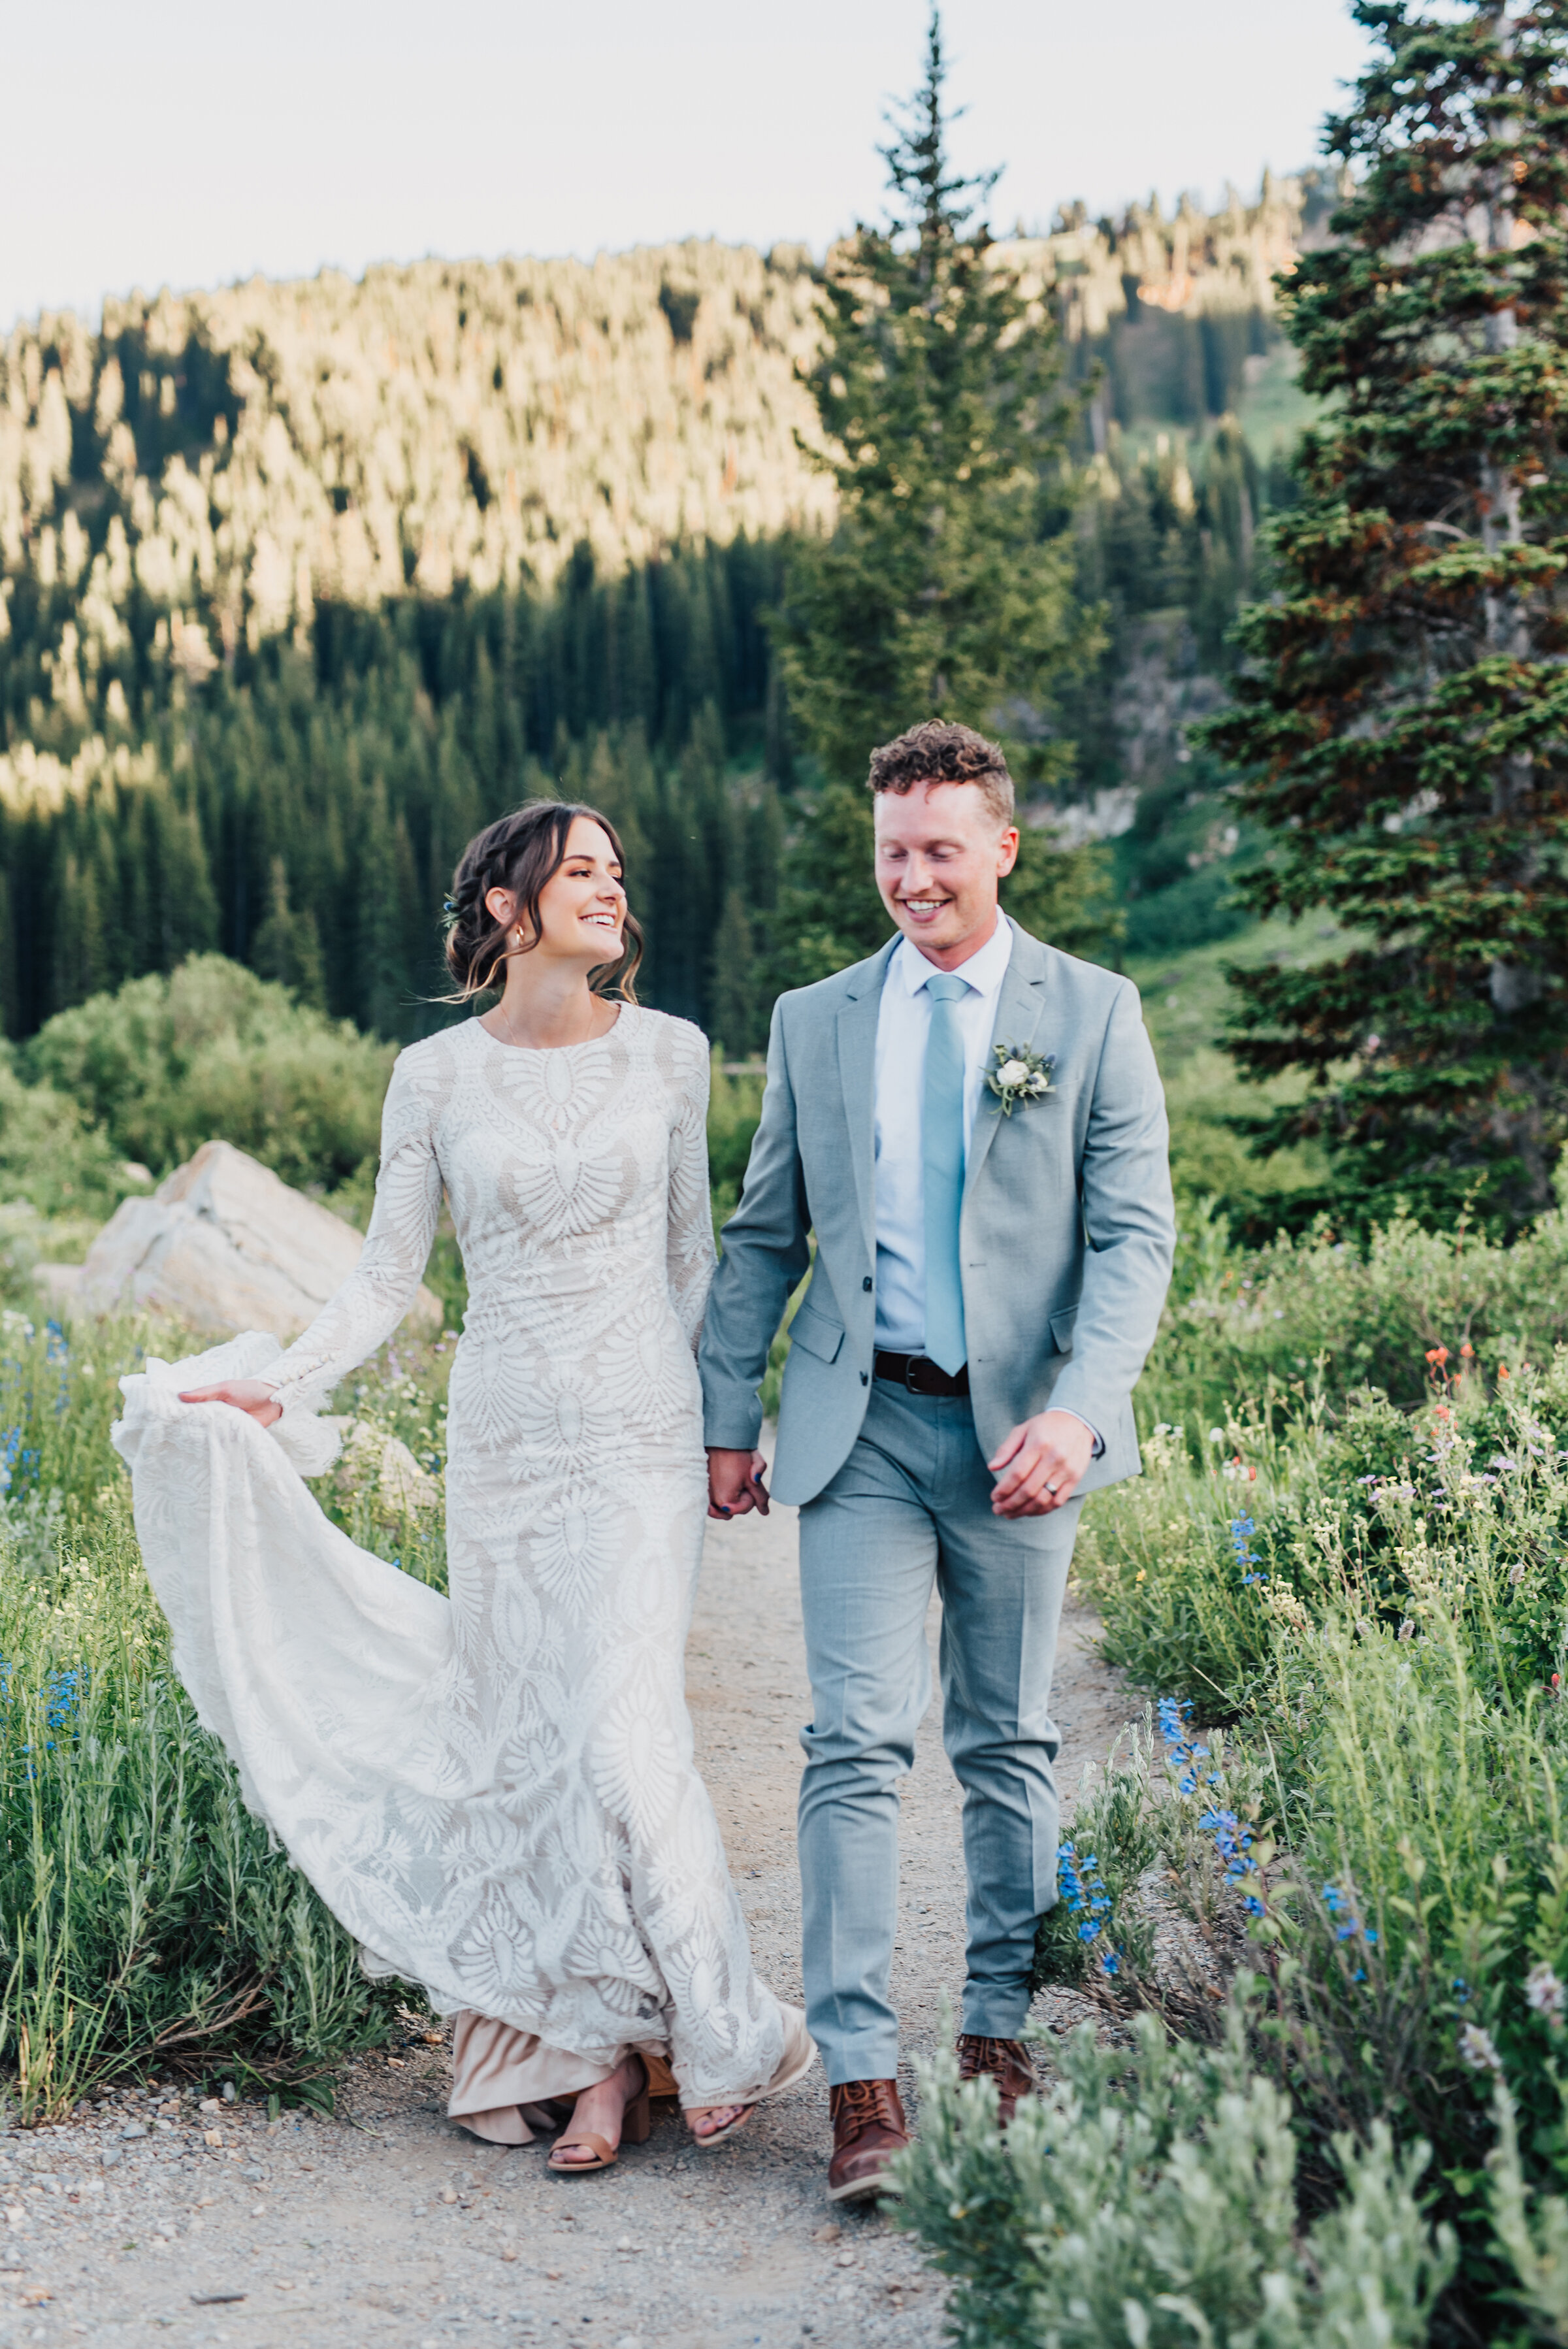 Happy bride and groom walking into forever up Logan canyon at Tony Grove. Kristi Alyse photography Logan Utah wedding photographer forest nature dreamy formals Logan canyon Tony Grove scenic bridals Northern Utah photographer Utah brides bride and groom Cache Valley #kristialysephotography #loganutahphotographer #tonygrove #logancanyon #utahweddingphotographer #bridals #formals #wildflowers #northernutah #utahbrides